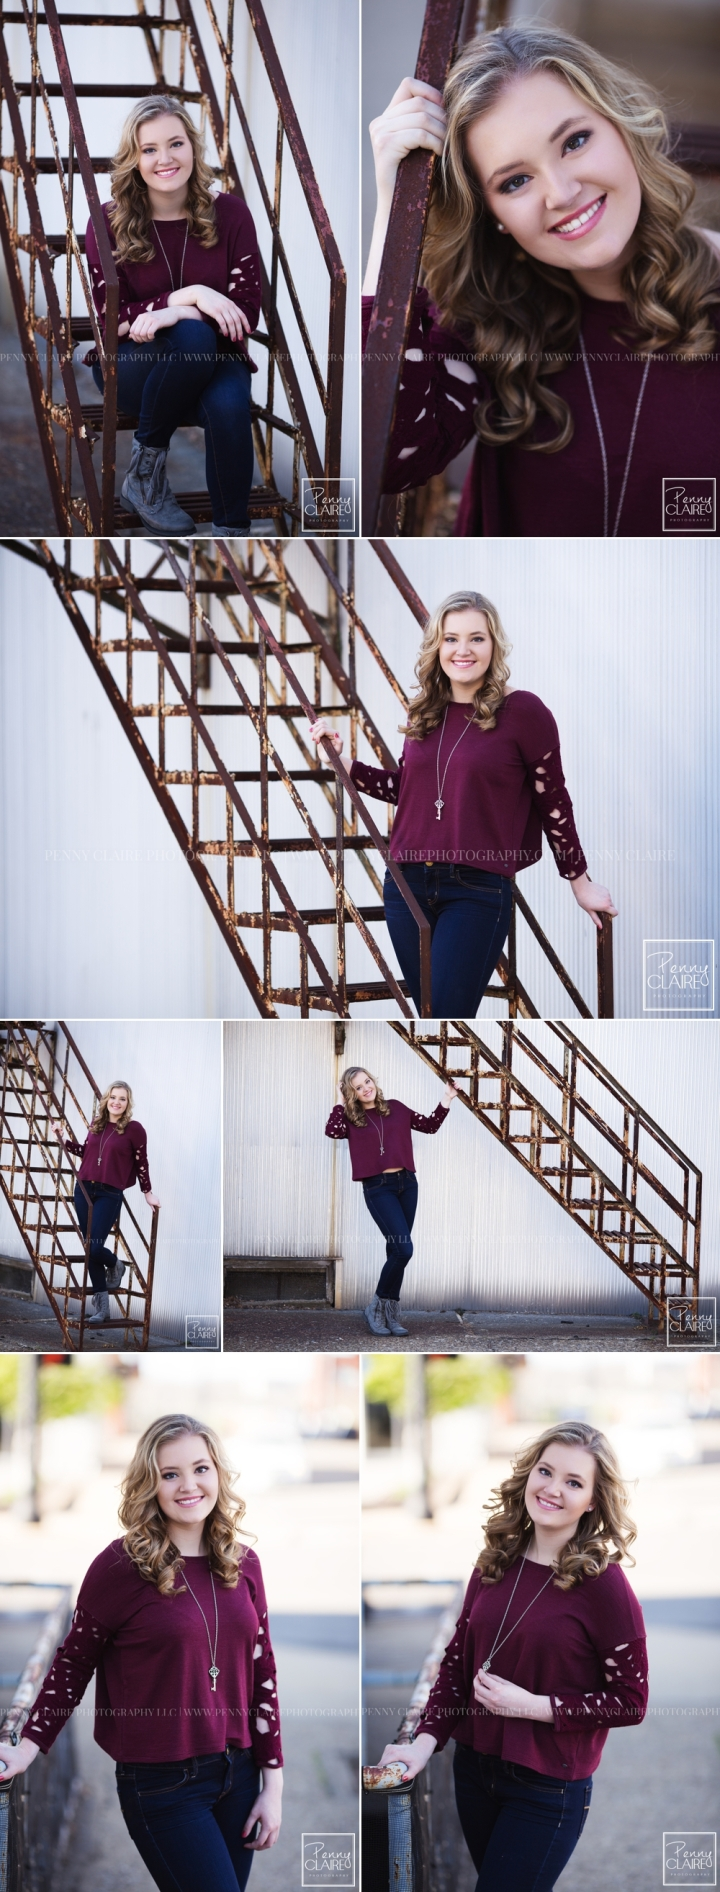 High-School-Senior-Photos-pennyclaire 4